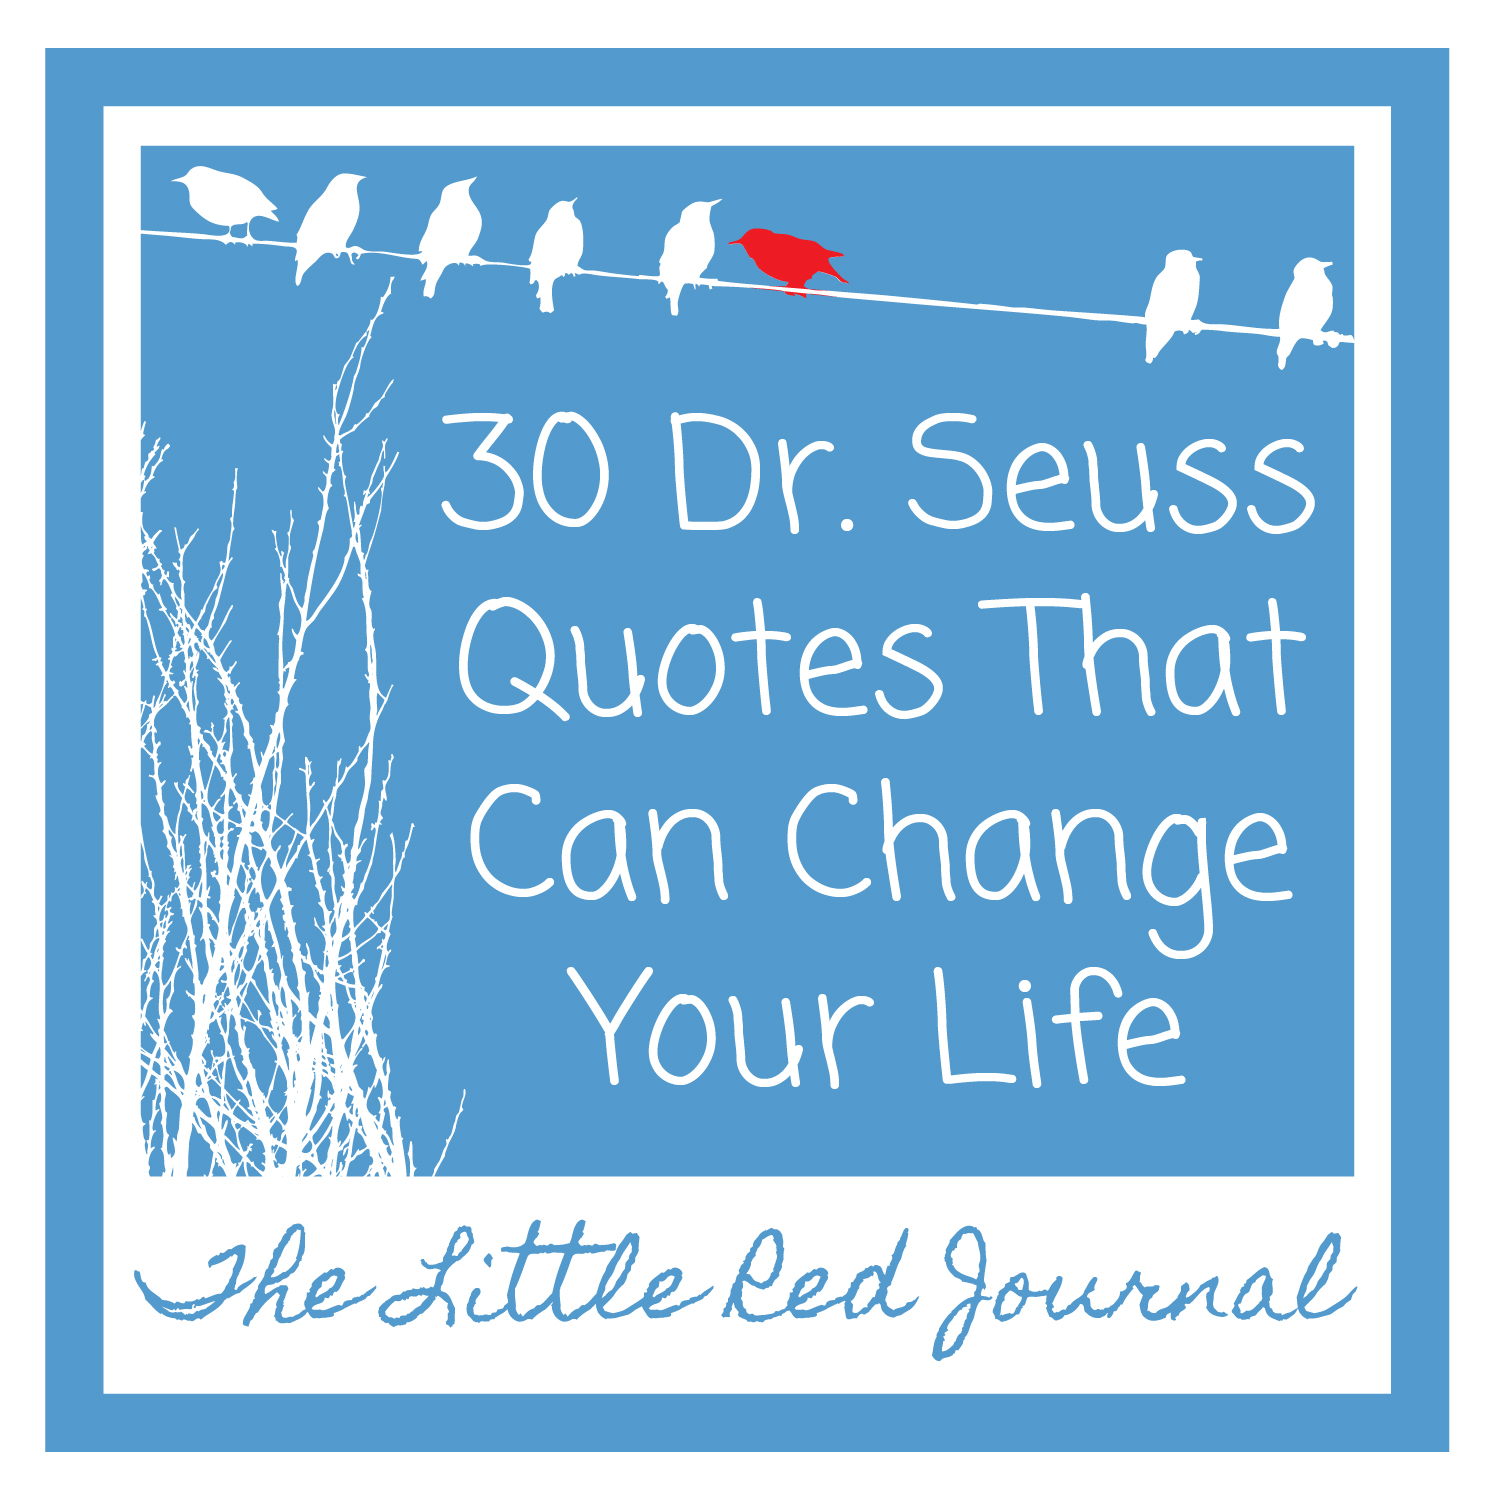 30 dr seuss quotes change life